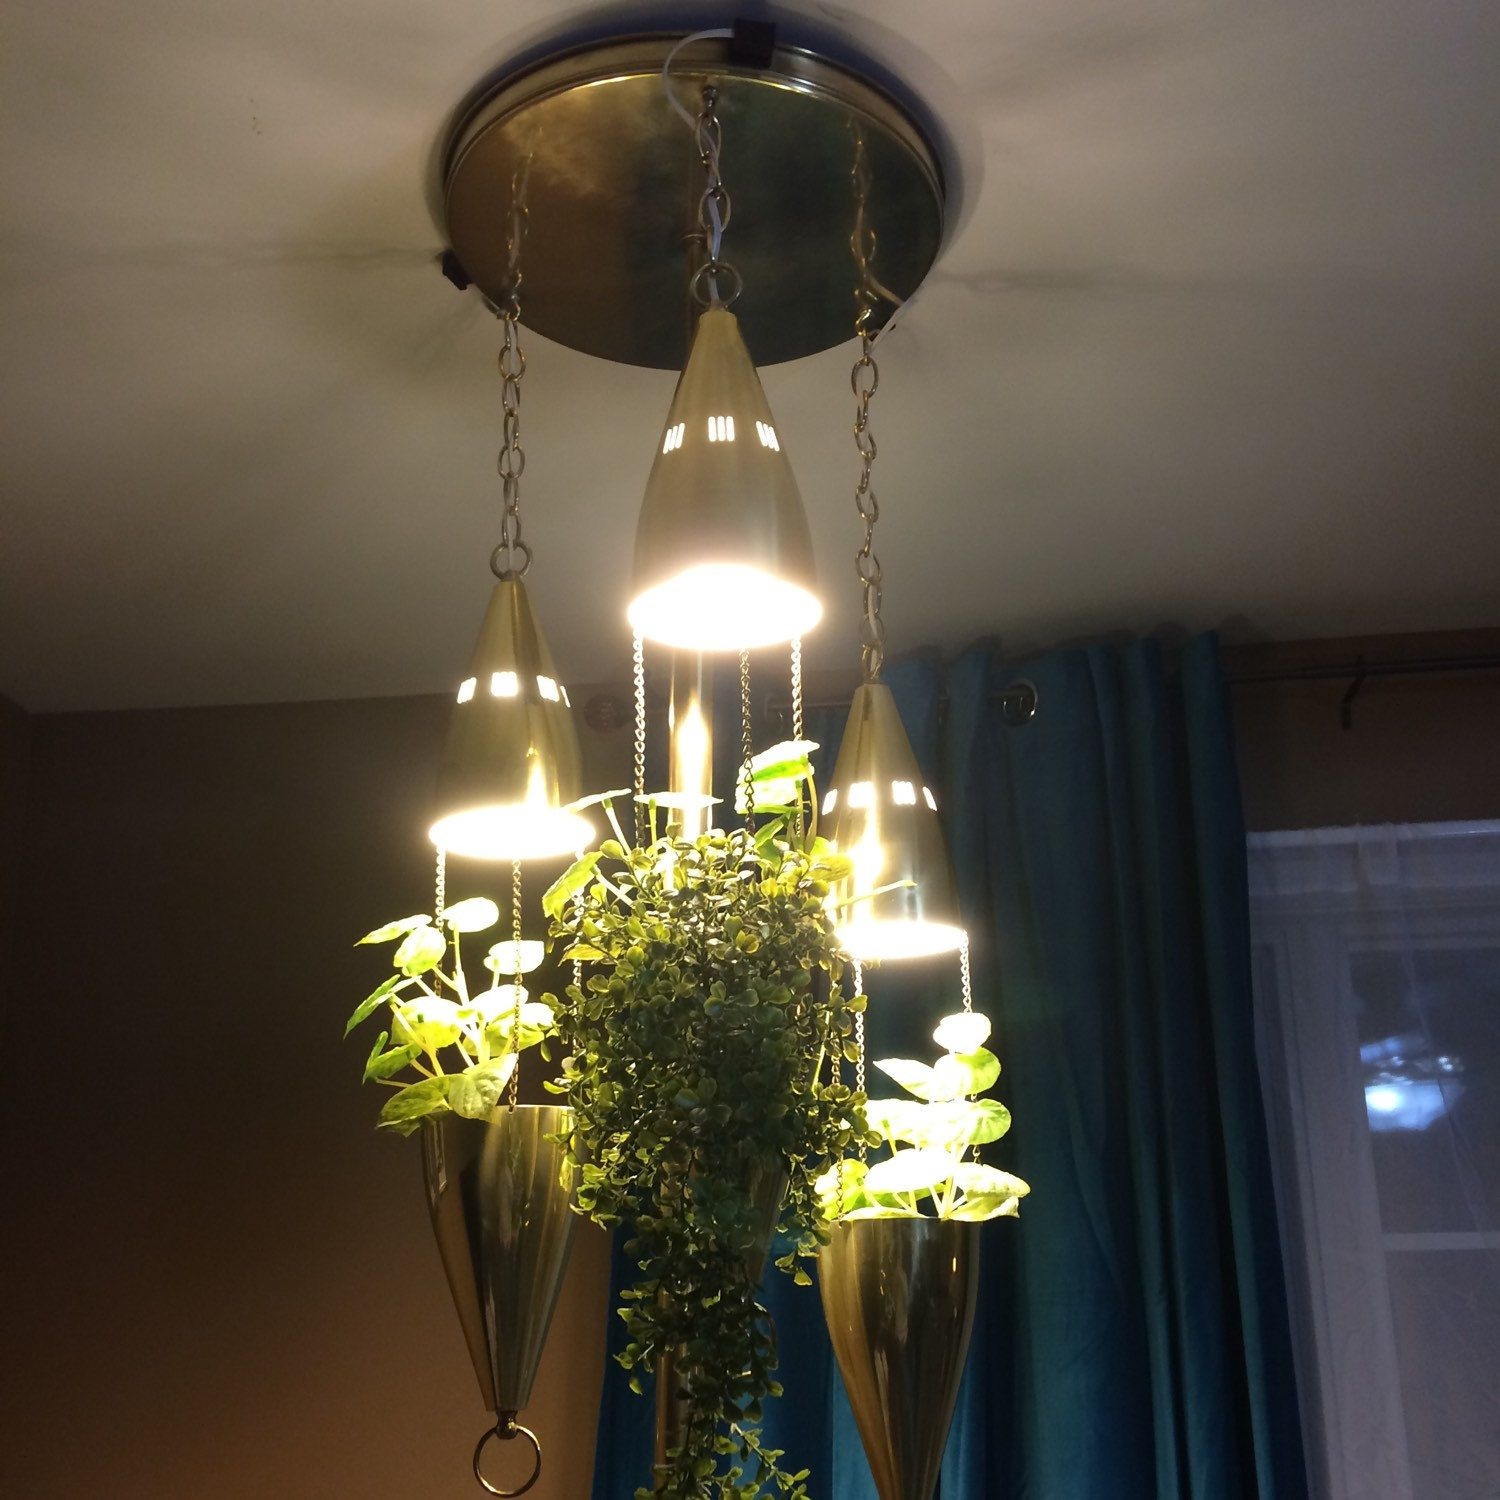 hight resolution of the most amazing tension pole lamp you will ever see brass finish polished new wiring and sockets new switch hanging lights feature bullet planter and